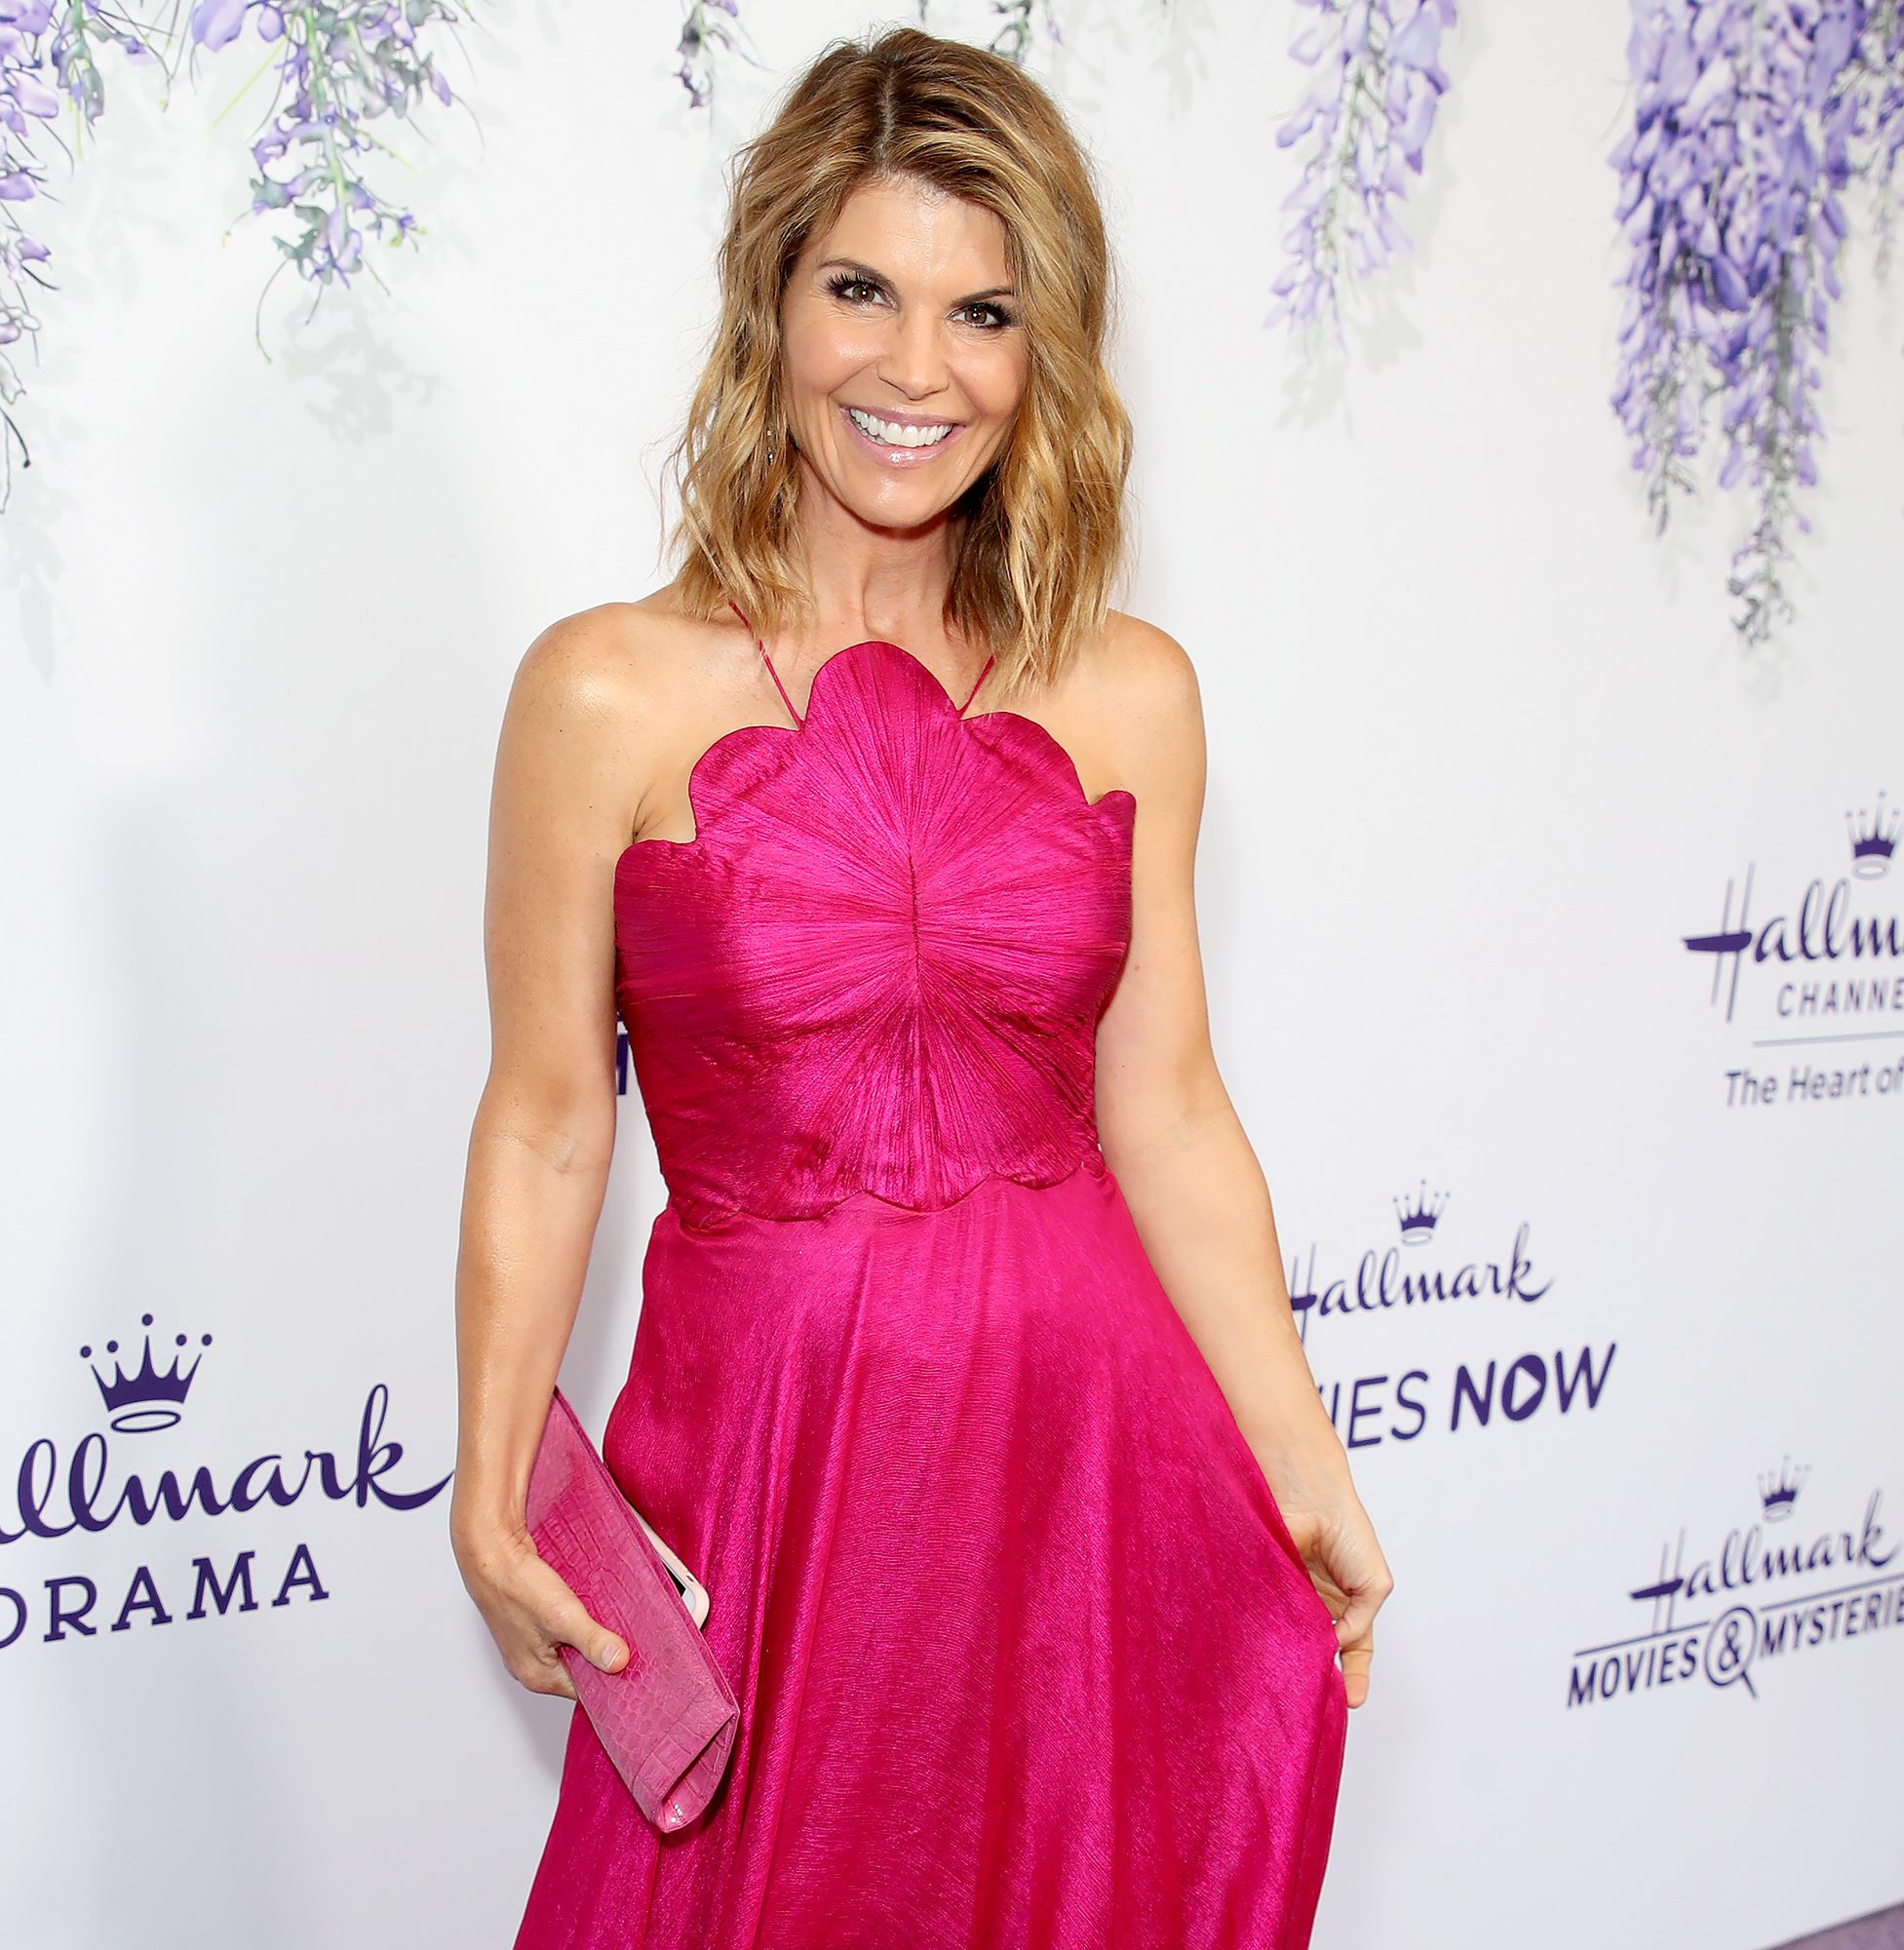 Lori Loughlin Is Confident College Scandal Case Could Be Dropped